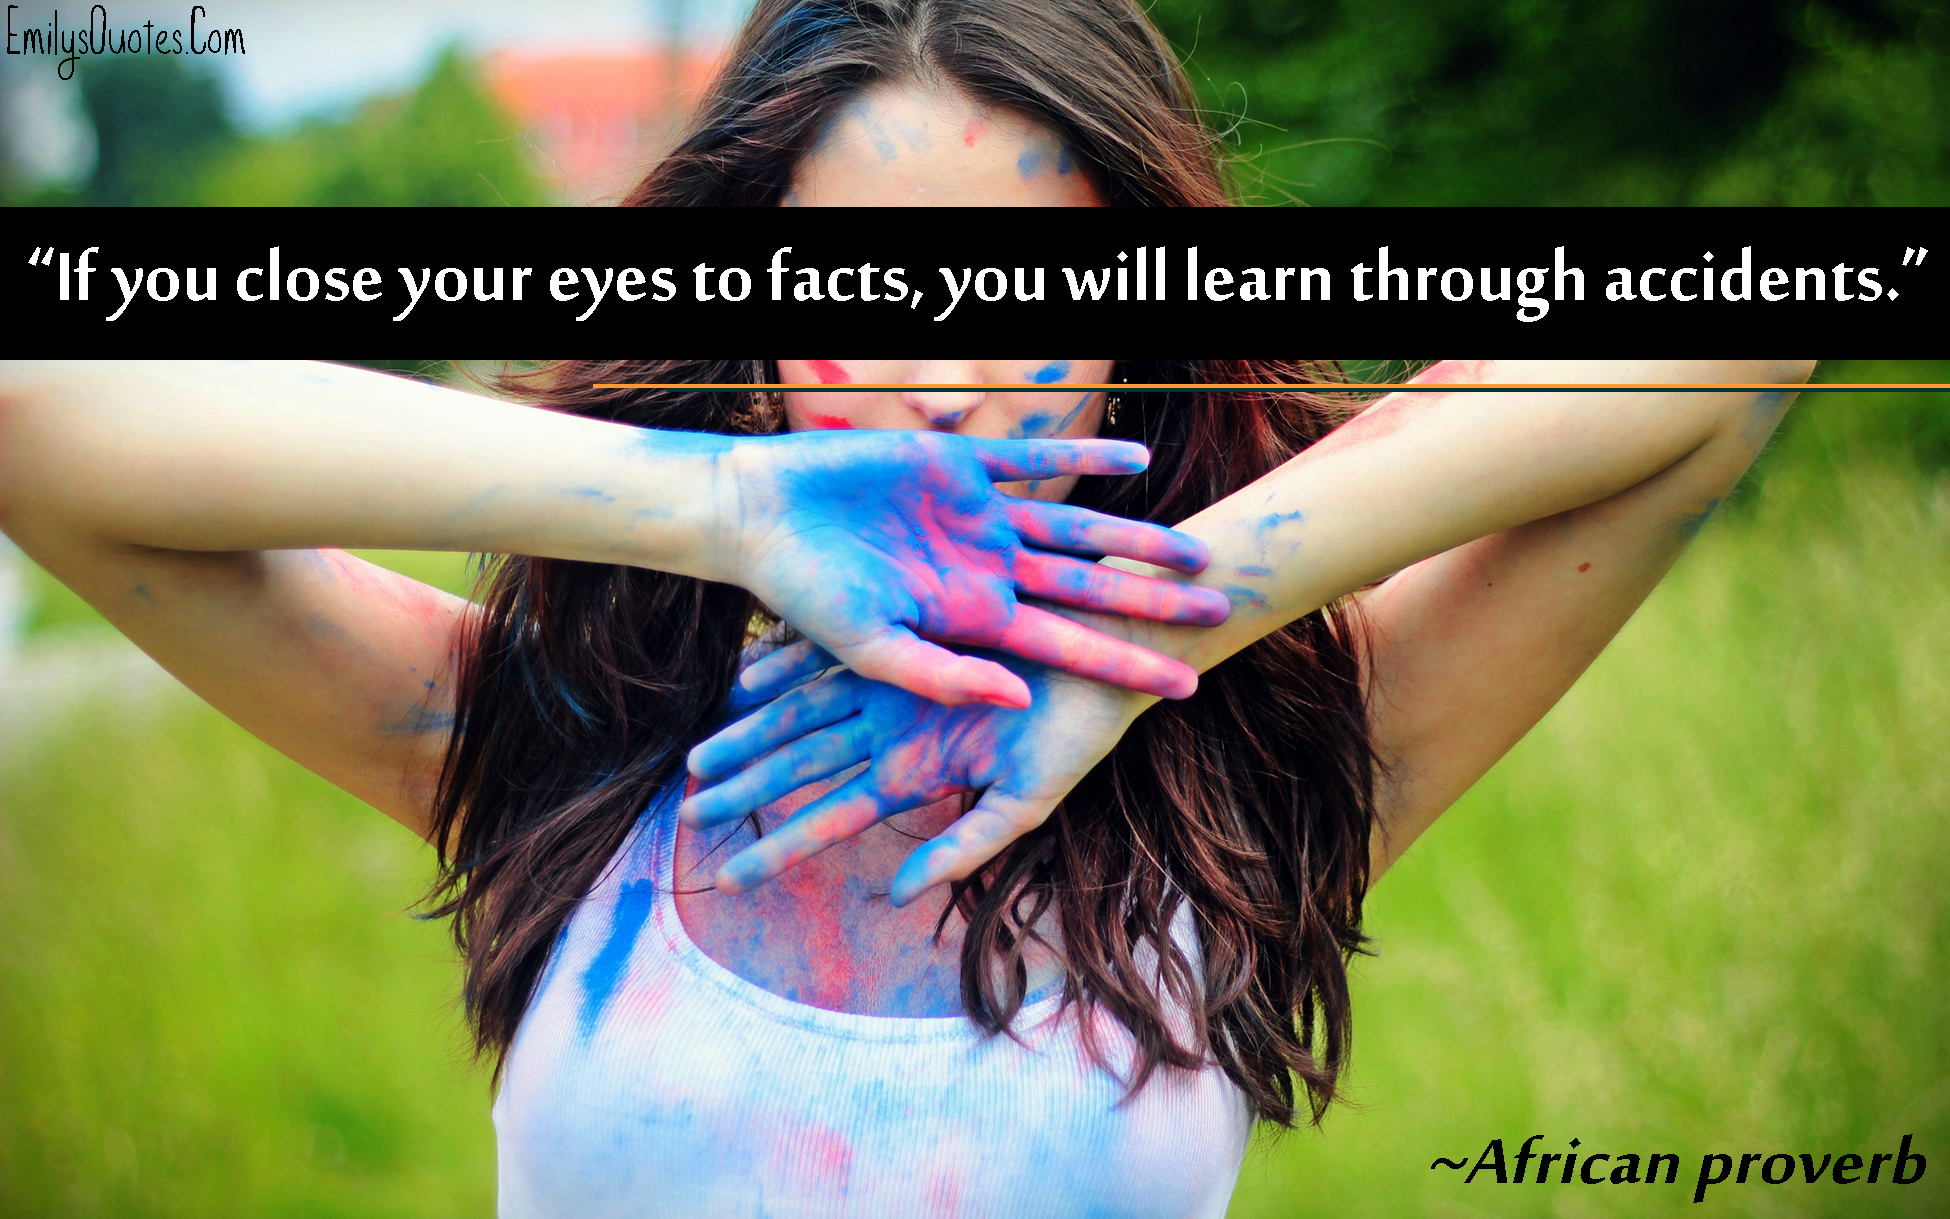 EmilysQuotes.Com - close eyes, facts, learning, accidents, consequences, African proverb